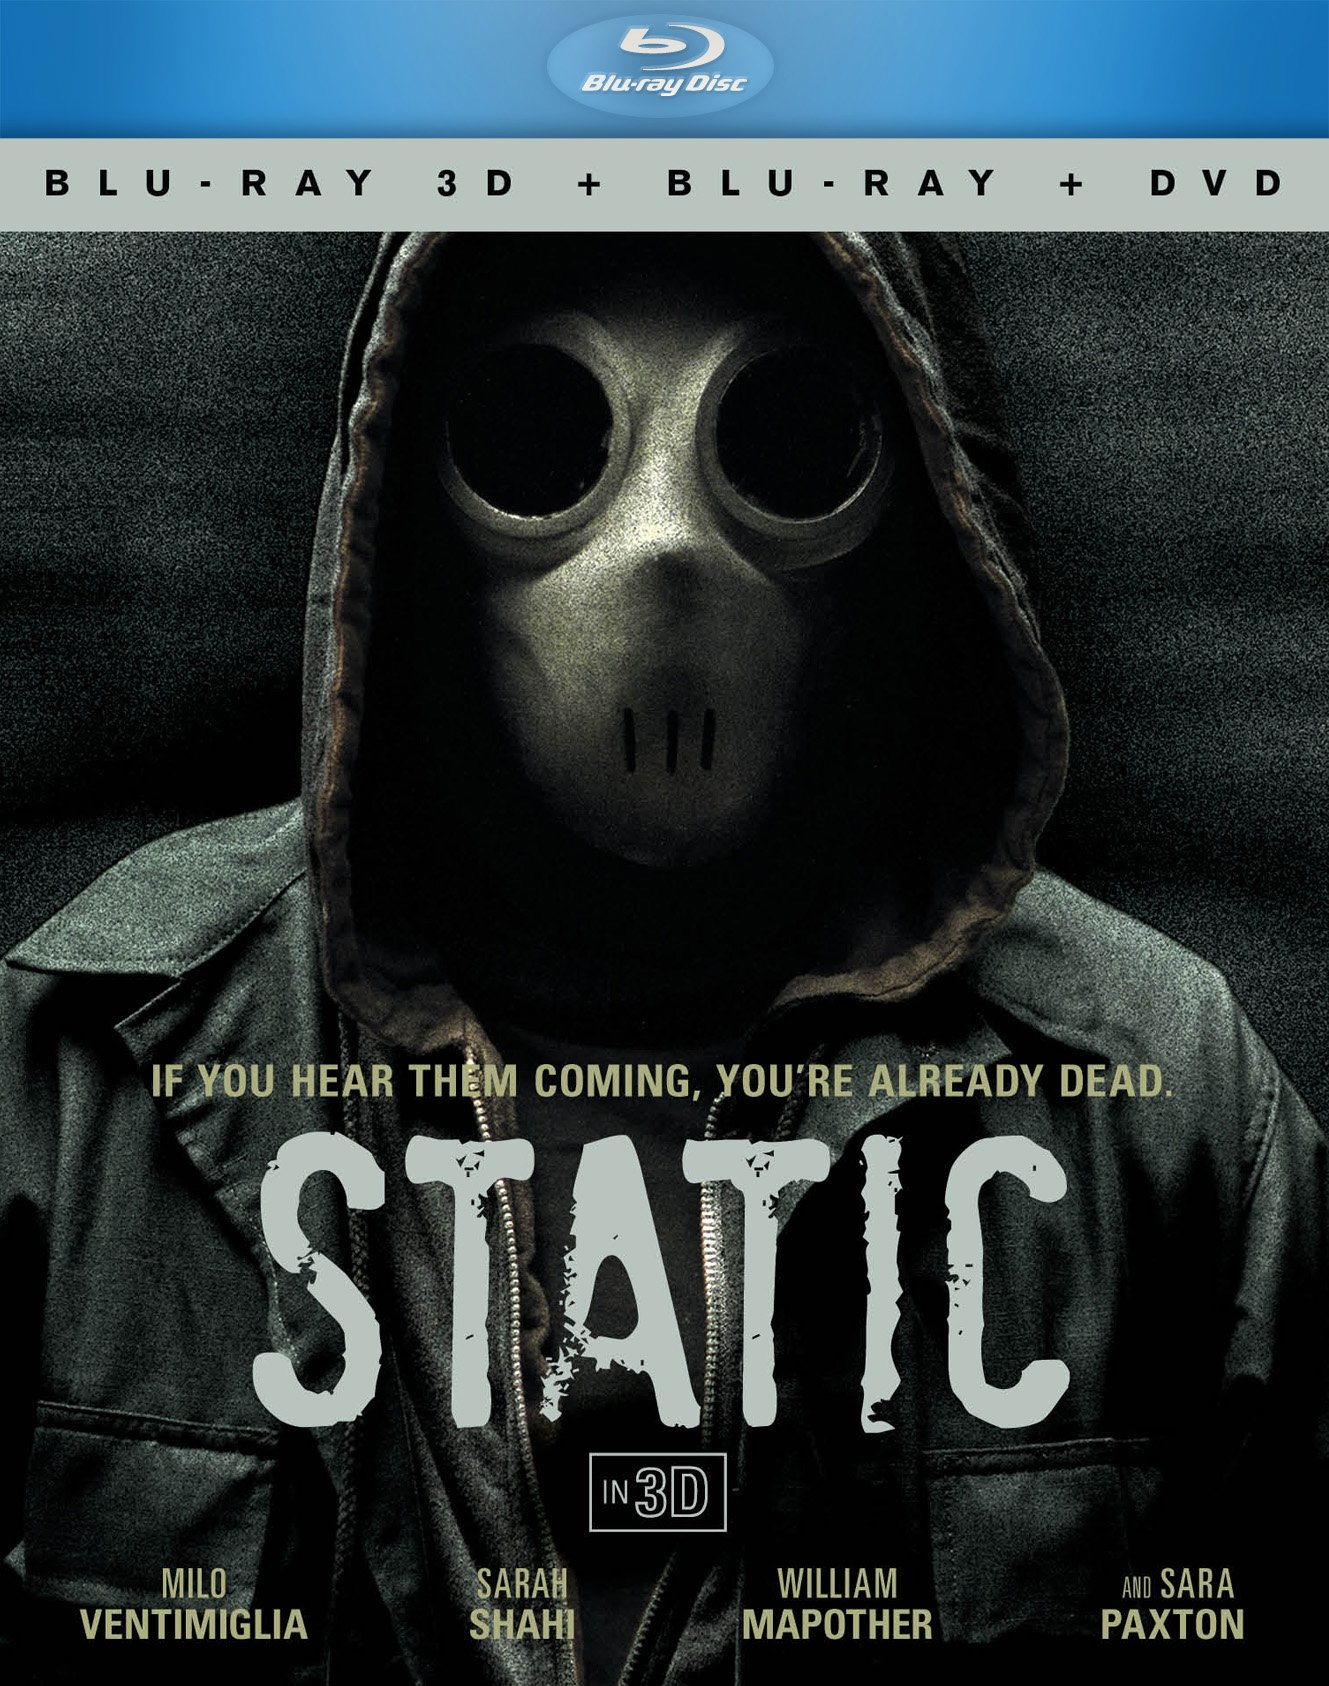 Blu-ray 3D : Static [3D BD+DVD Combo] (With DVD, 3 Pack, 3 Dimensional, 3 Disc)